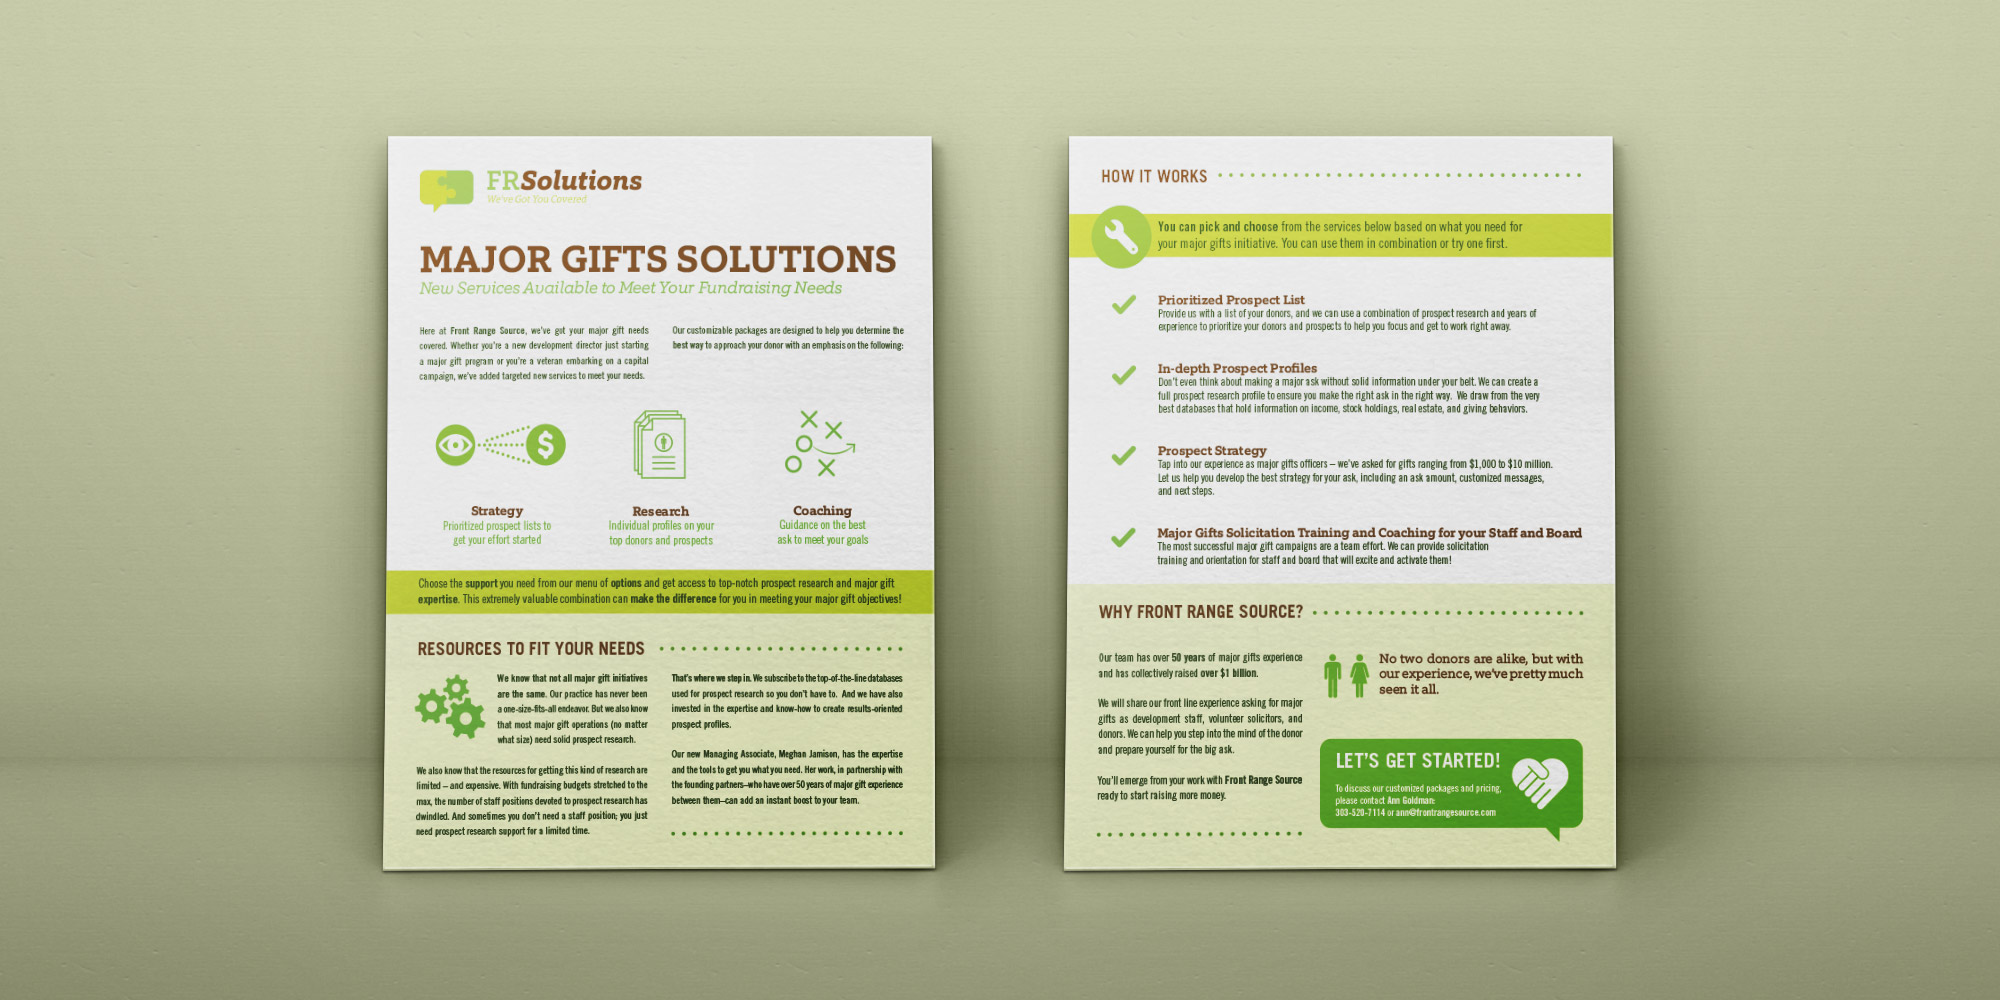 FRSolutions-Gift-Solutions-onesheet